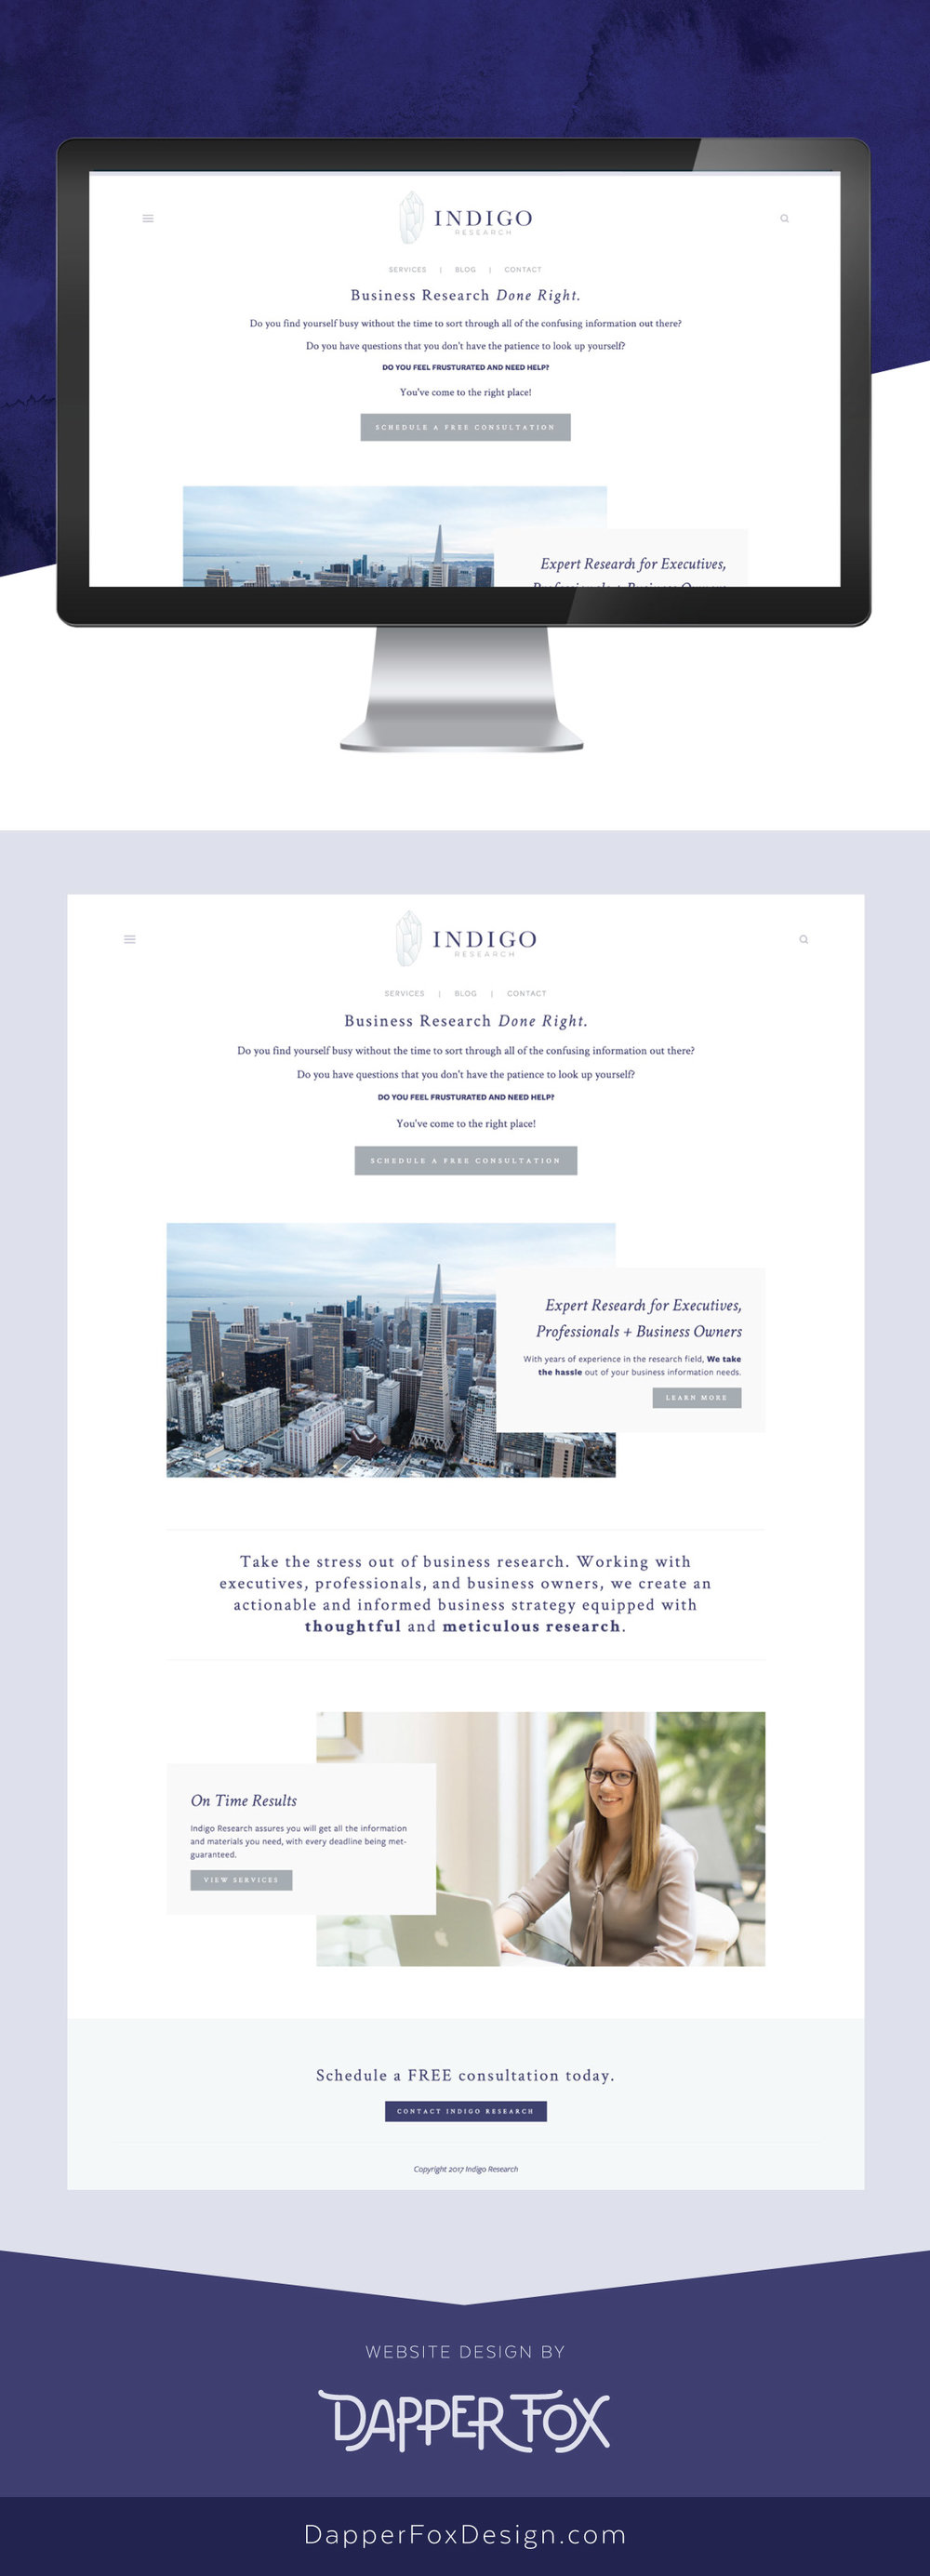 Squarespace Website Design - Indigo Research Florida Squarespace Website Design and Branding by Dapper Fox Design